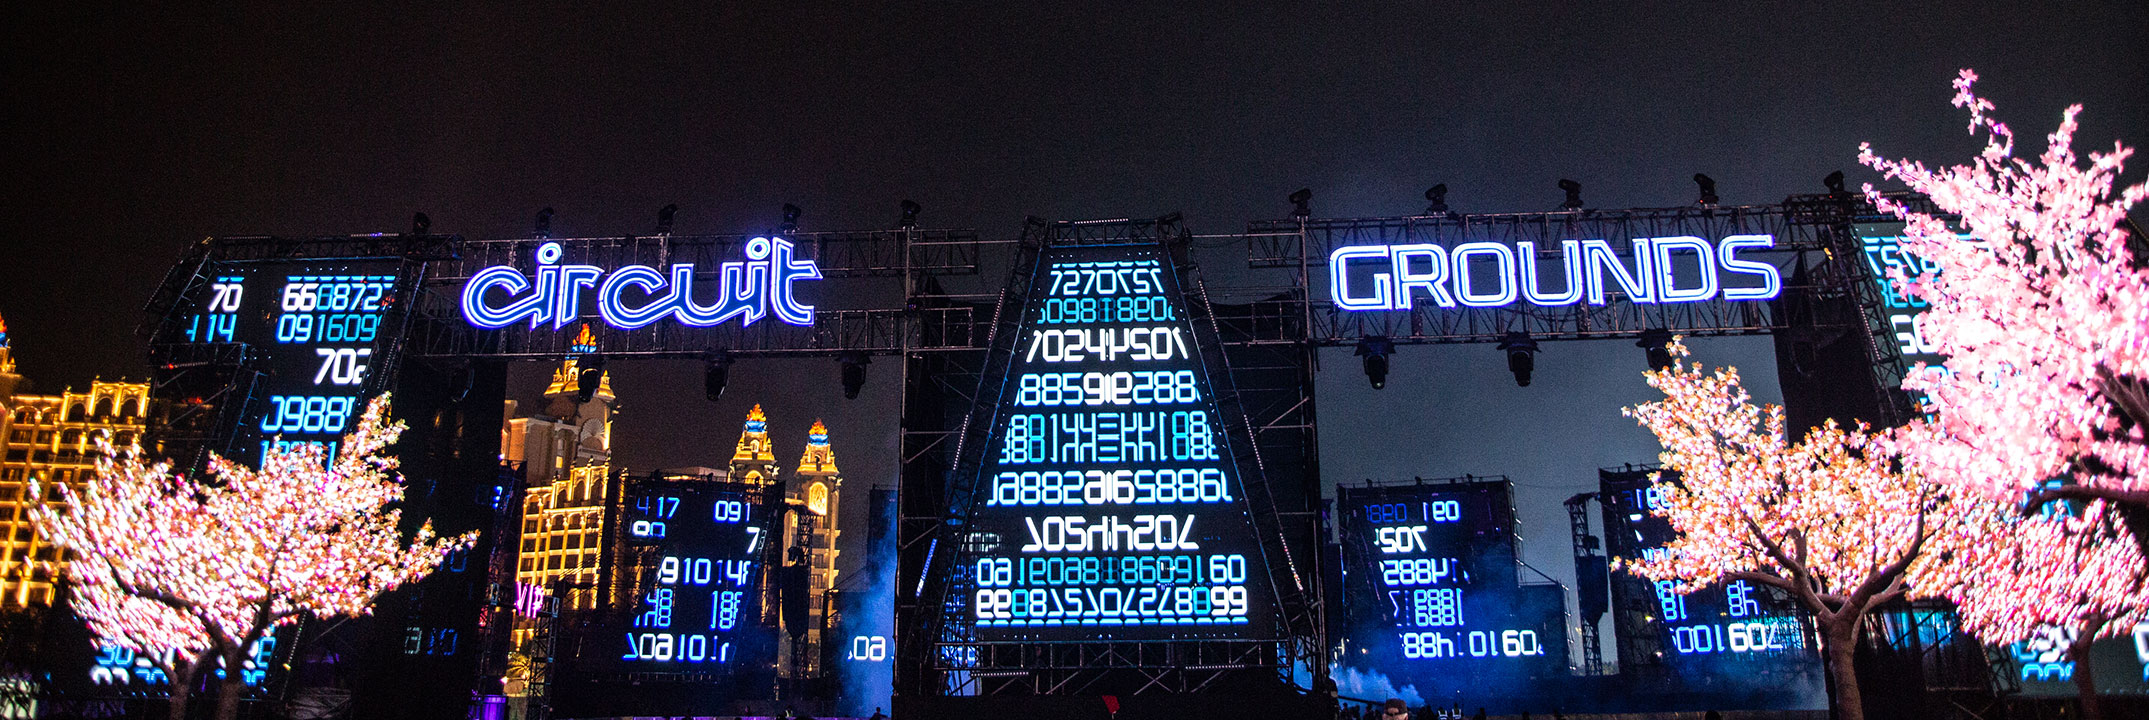 EDCGDONG2018_1124_205340-2929_GJB-gallery